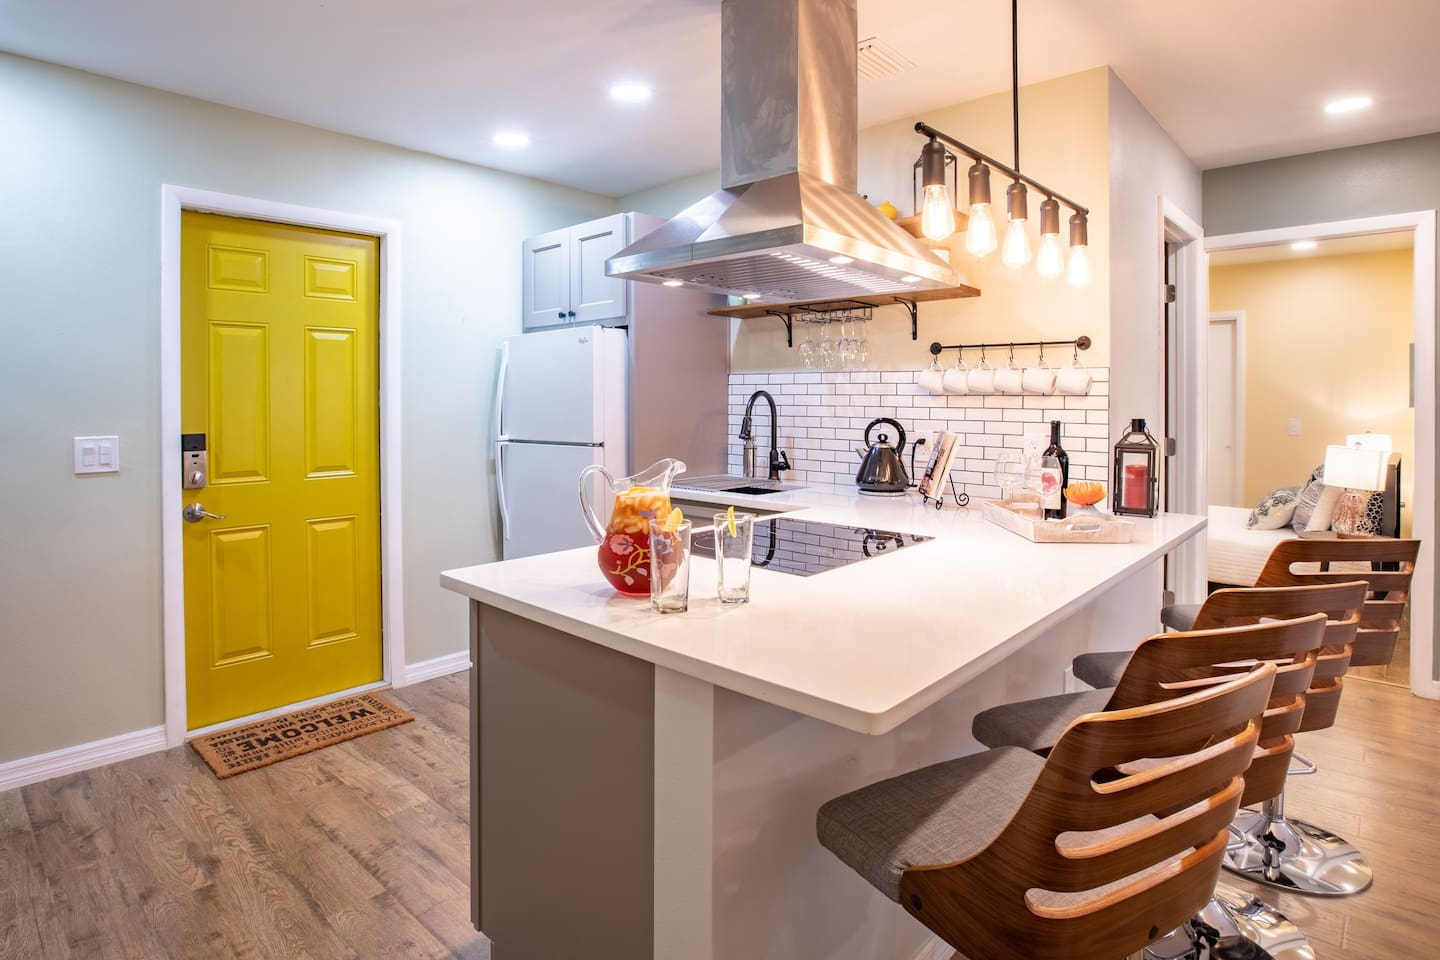 Brand new farmhouse-inspired kitchen to enjoy a delicious meal and entertain guests